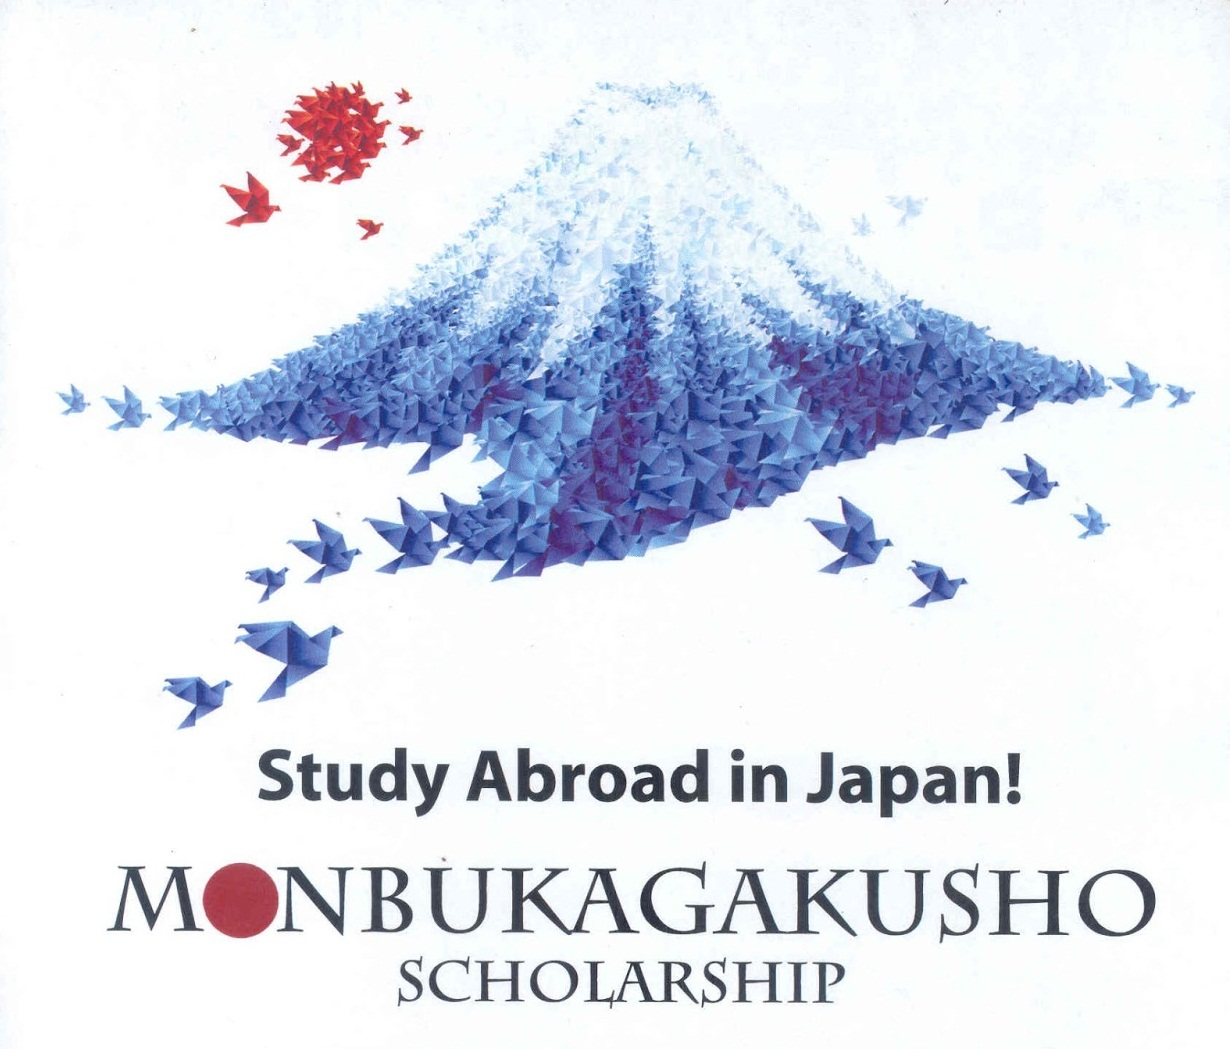 Monbukagakusho_Scholarship in Japan